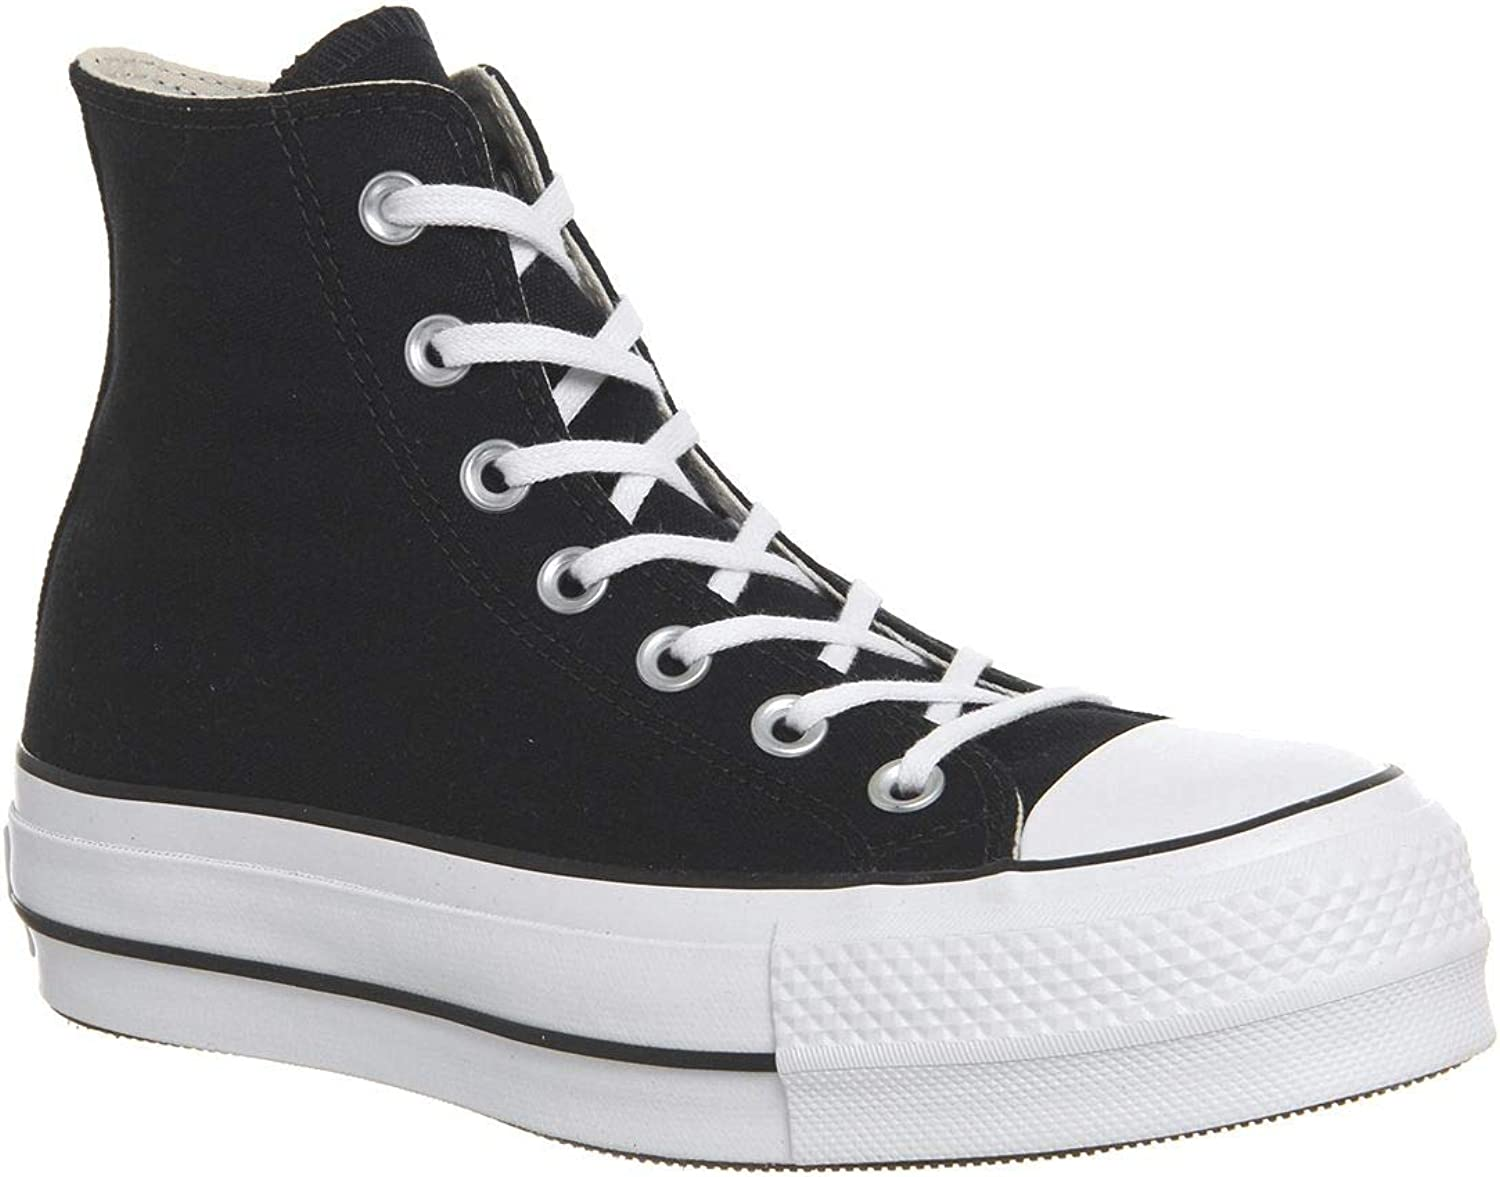 CONVERSE shoes woman high sneakers with platform 560845C CTAS LIFT HI